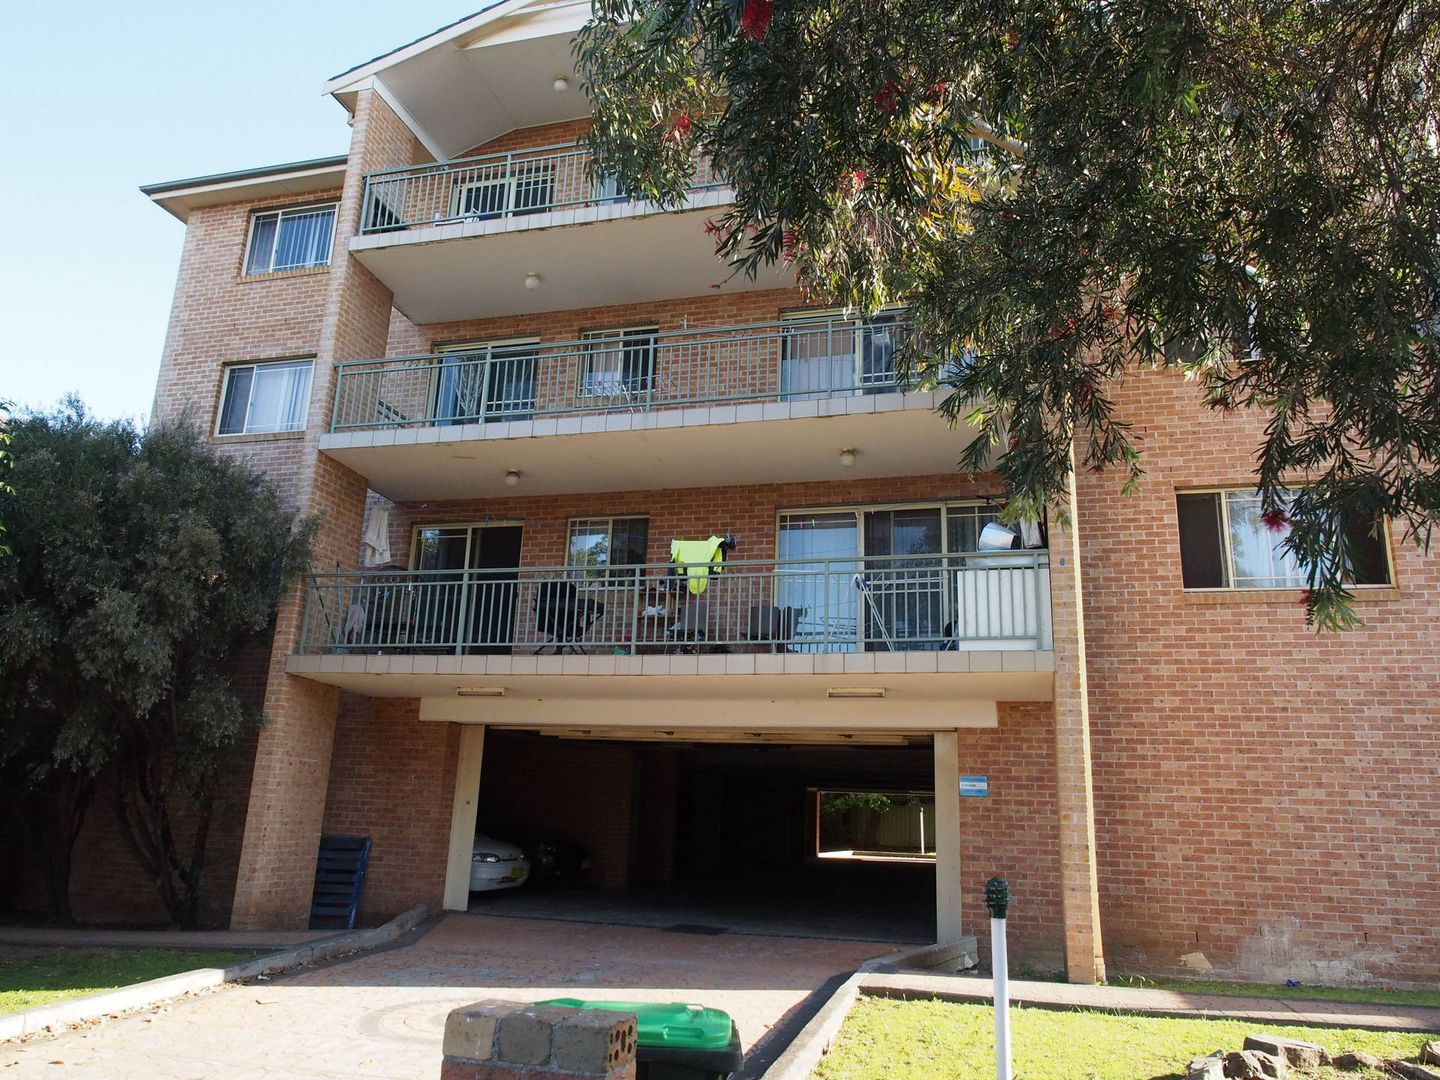 11/76 Beaconsfield St, Silverwater NSW 2128, Image 0